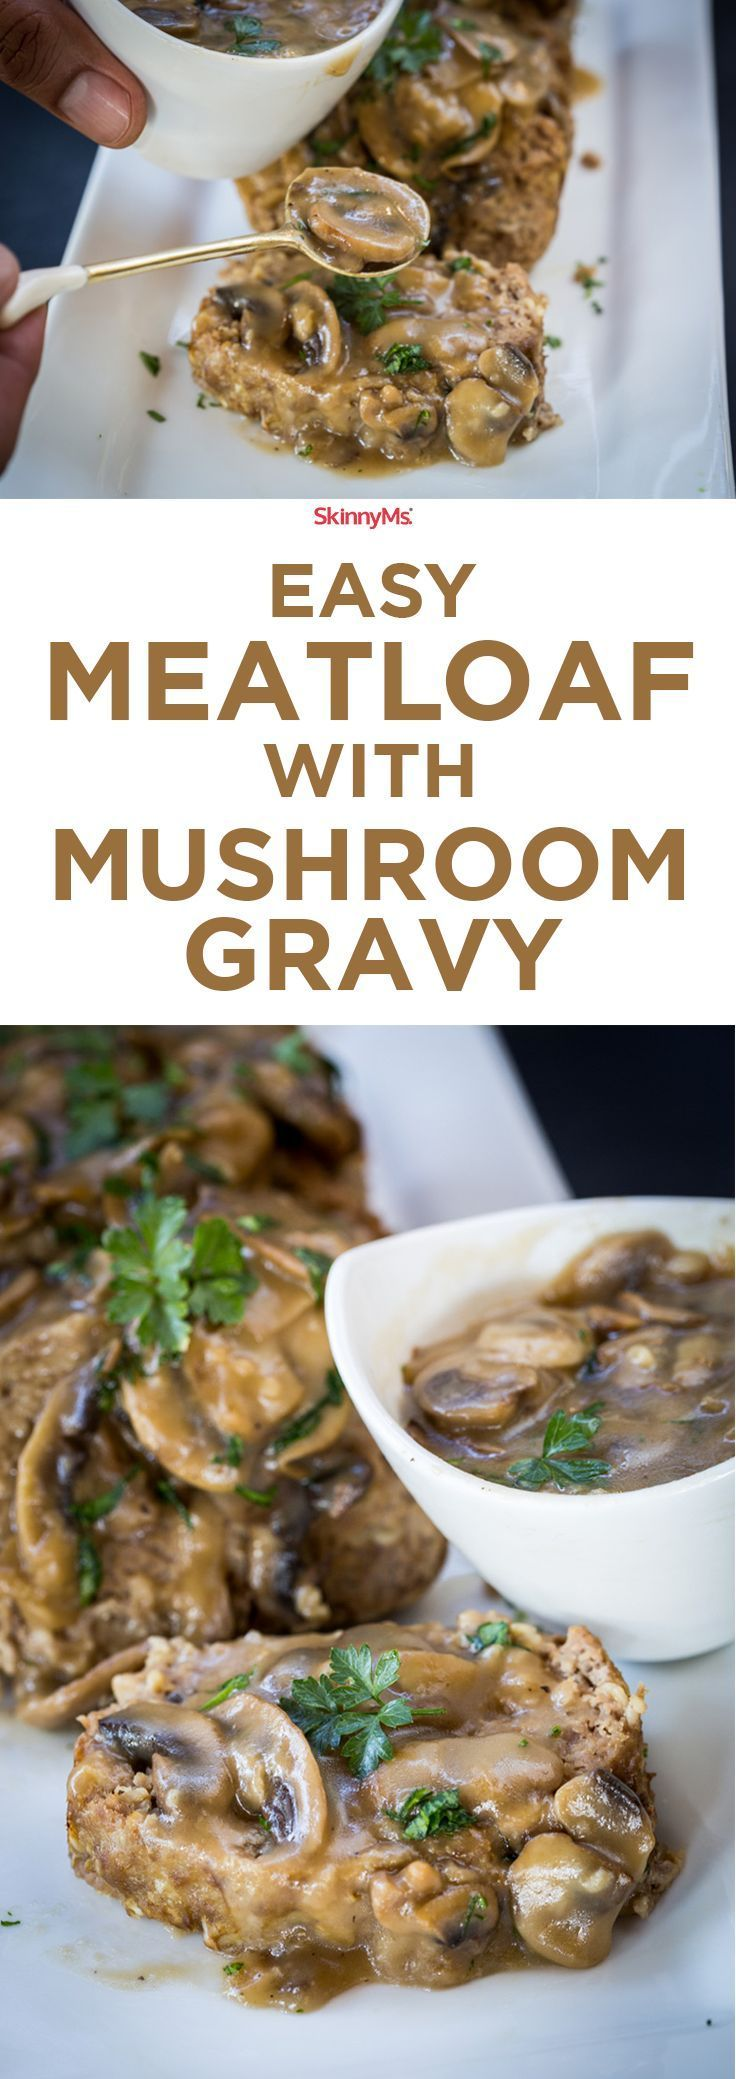 Easy Meatloaf with Mushroom Gravy - One word: Irresistible!